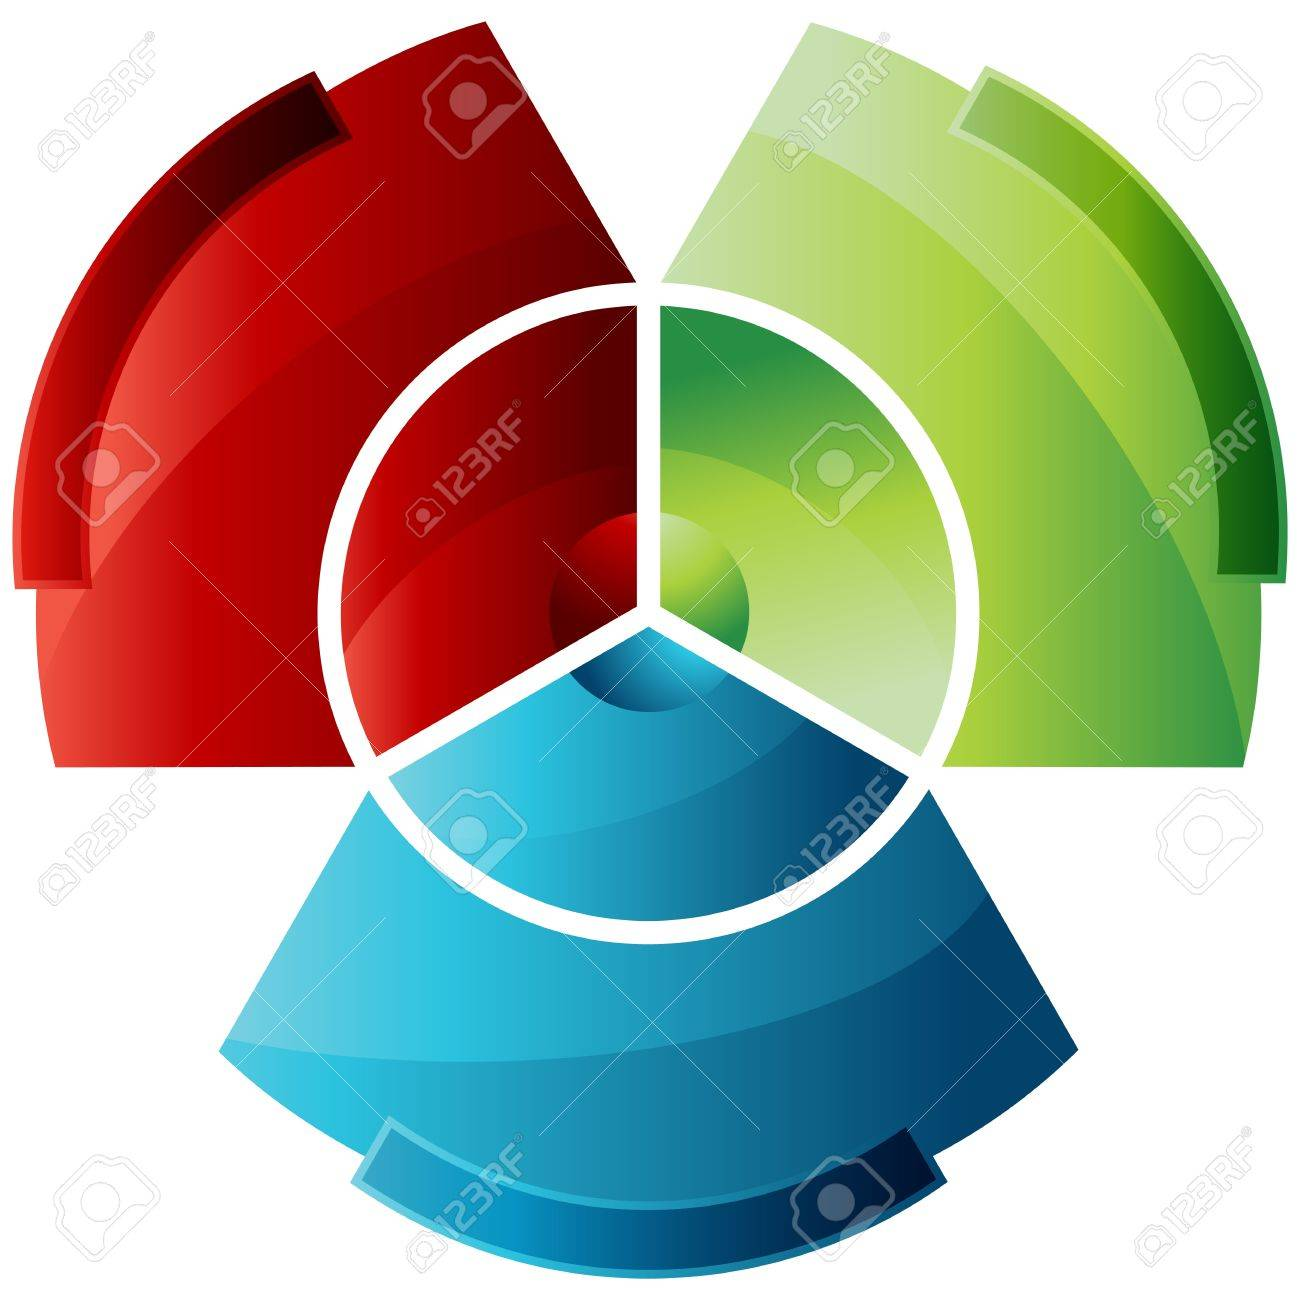 An image of an abstract partitioned pie chart. Stock Vector - 14976666